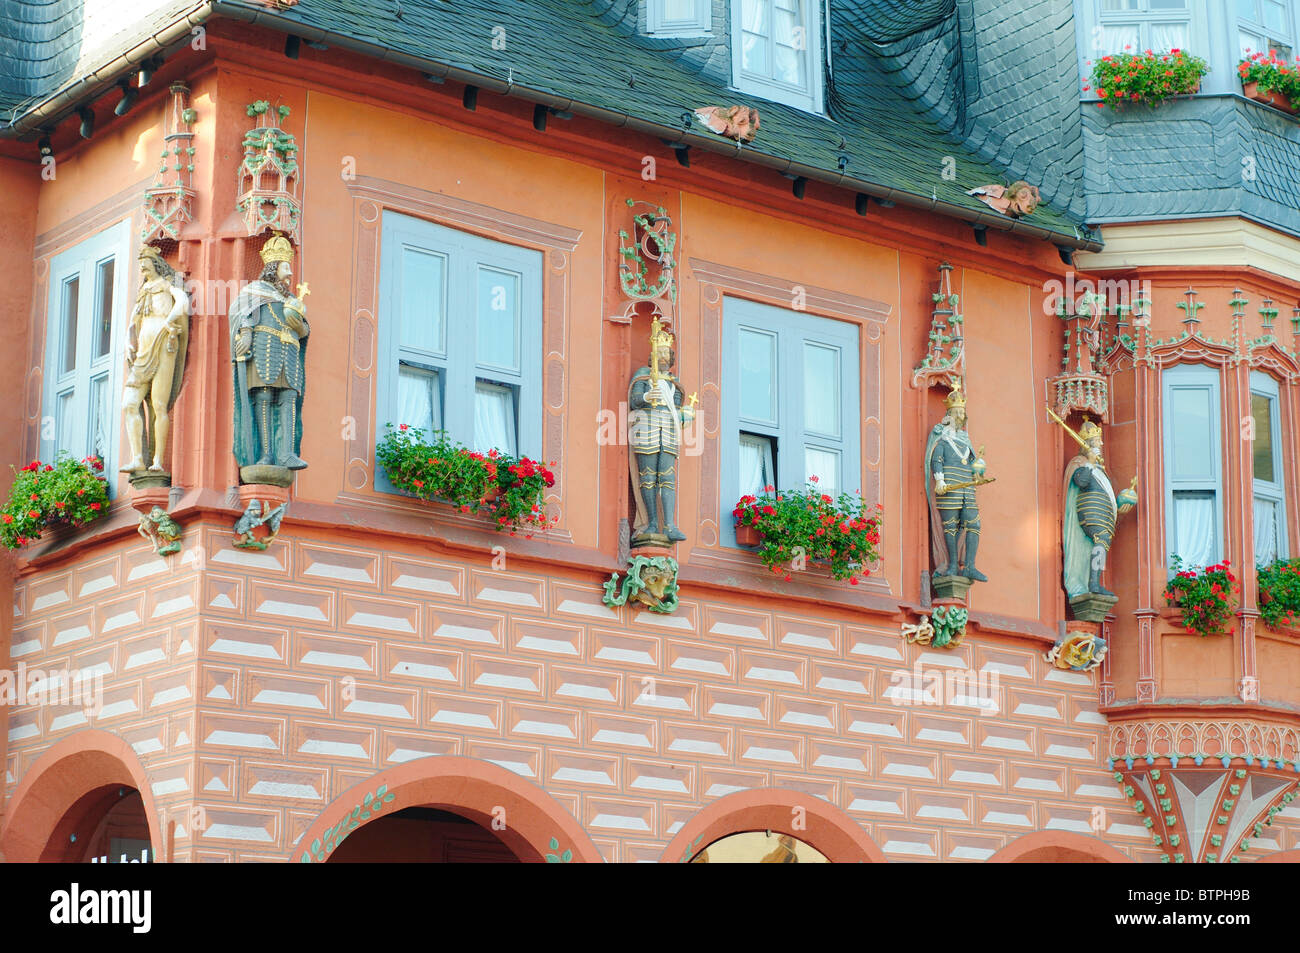 Germany, Goslar, town hall - Stock Image